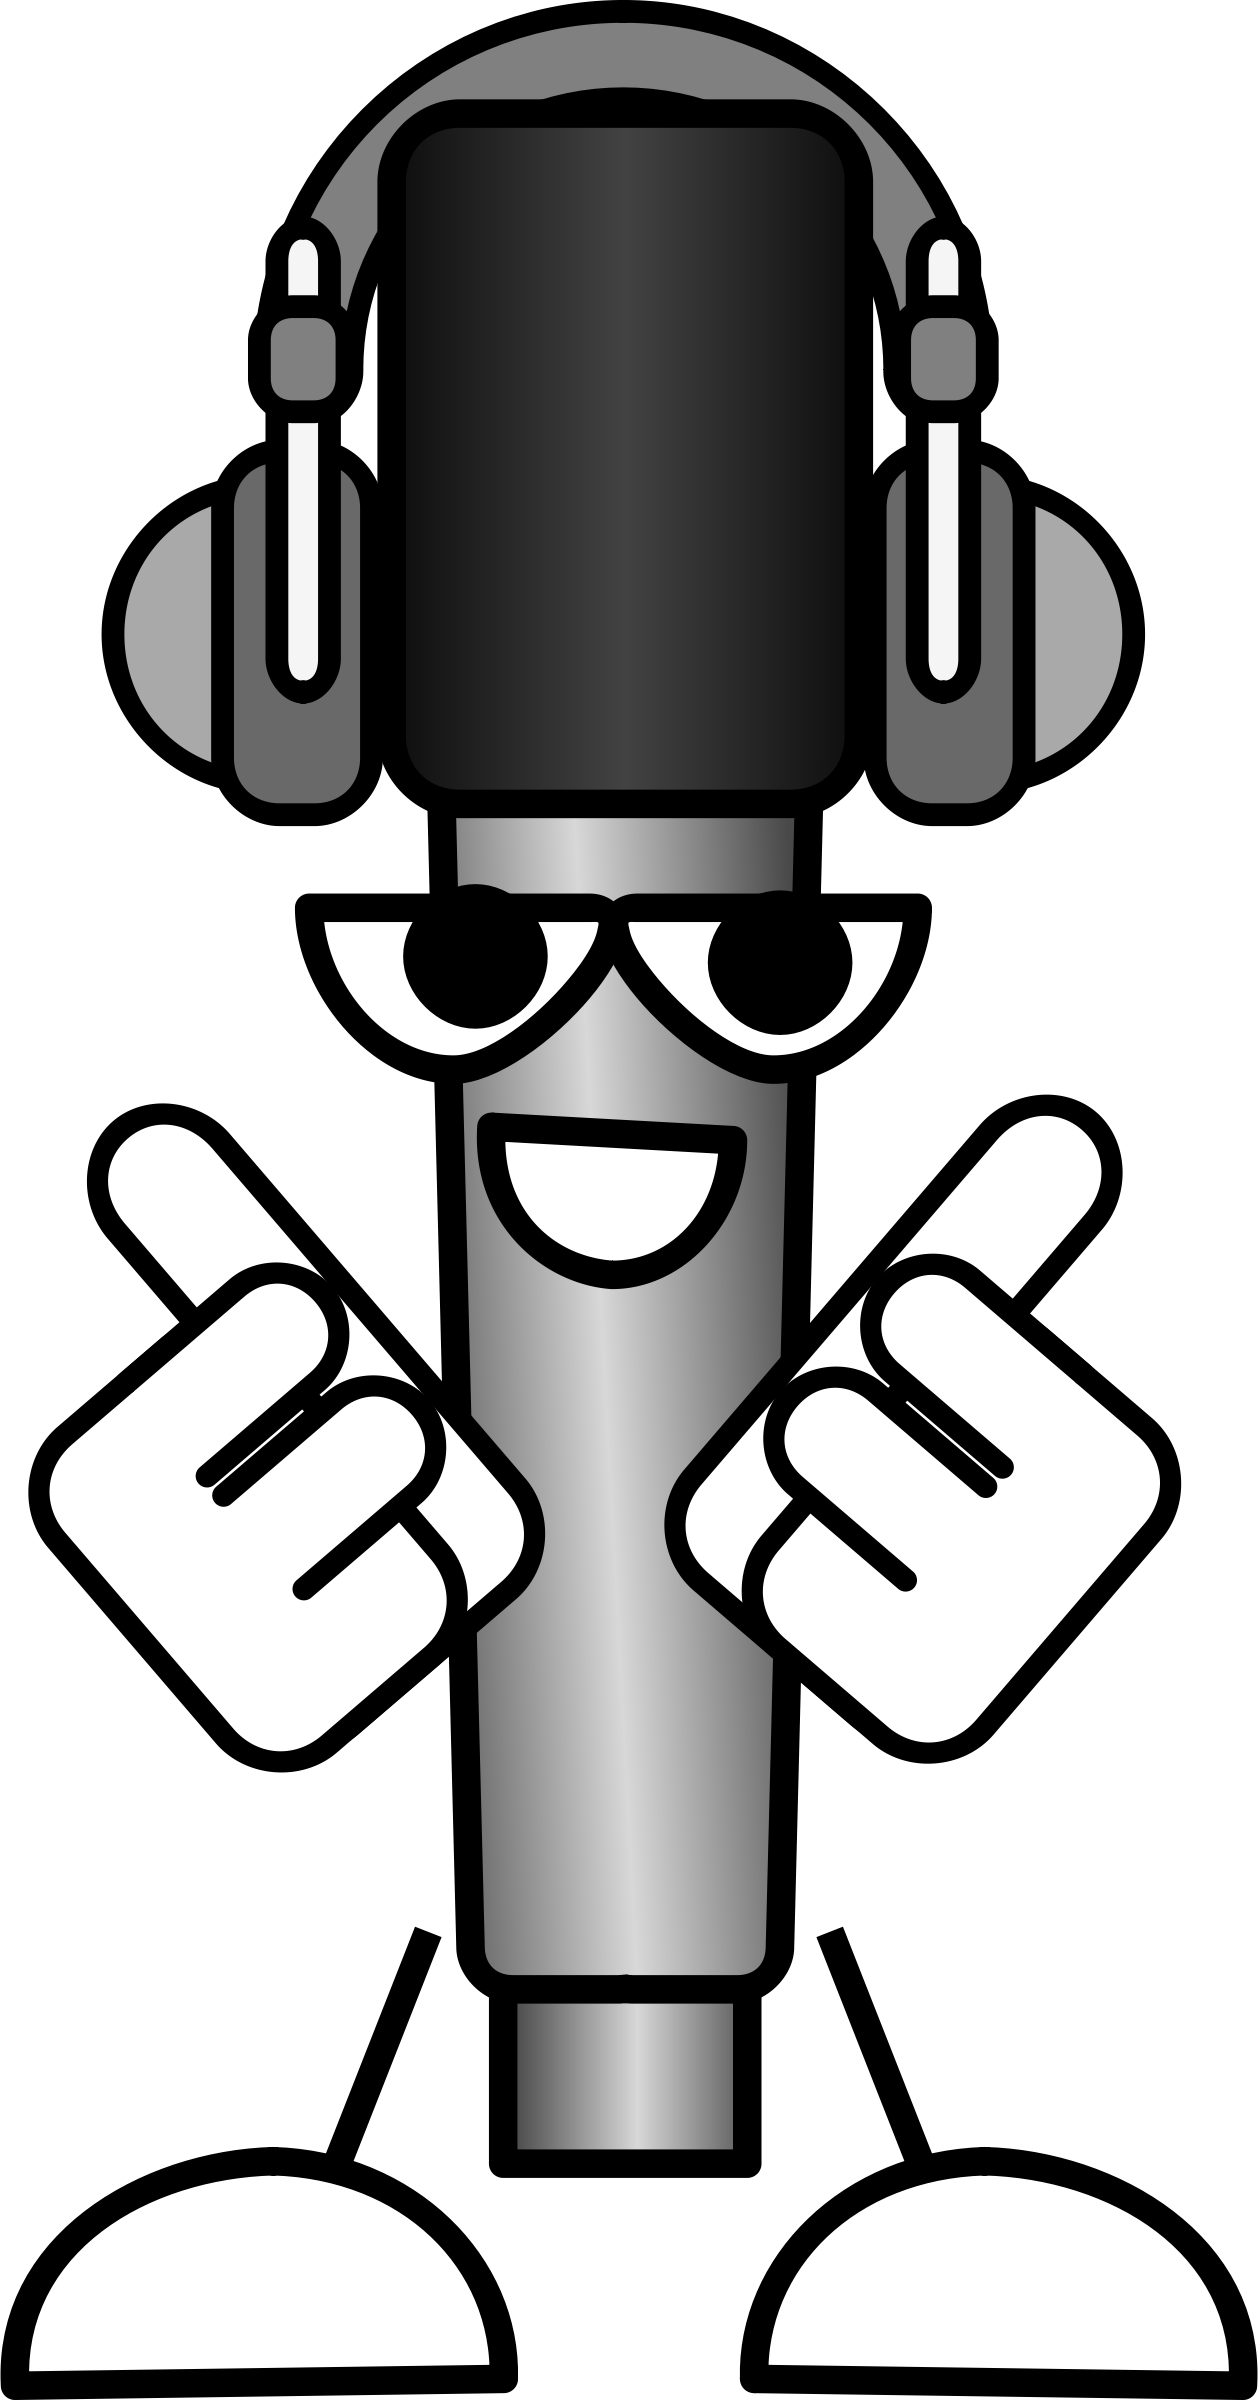 Mike the mic with. Microphone clipart painting